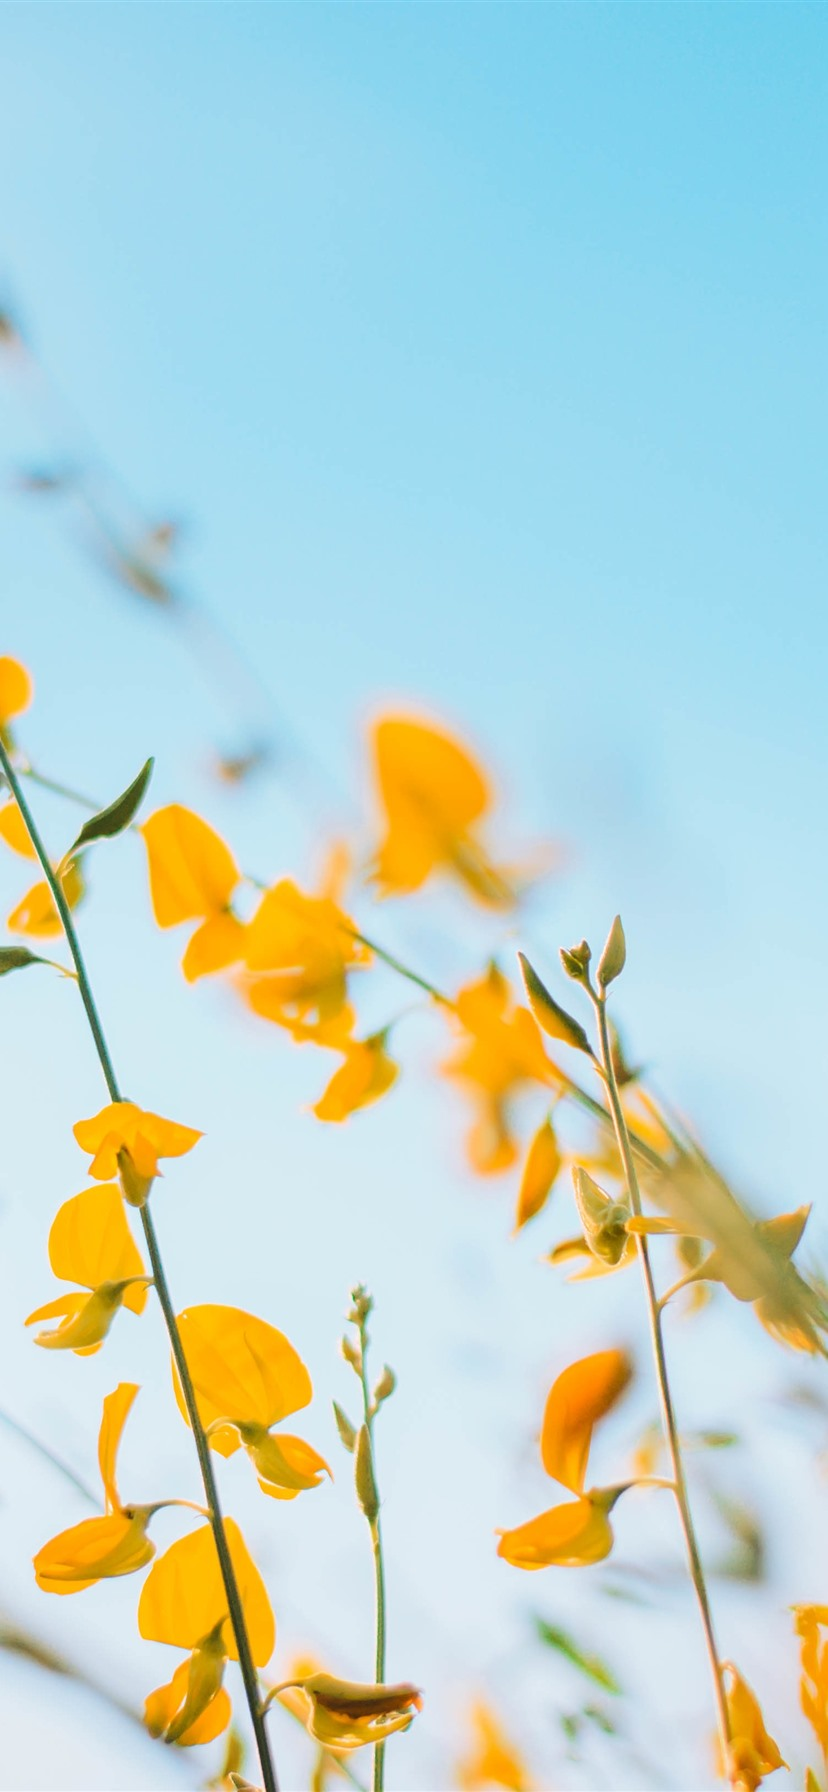 Yellow Flowers Blue Sky Background 1242x2688 Iphone 11 Pro Xs Max Wallpaper Background Picture Image